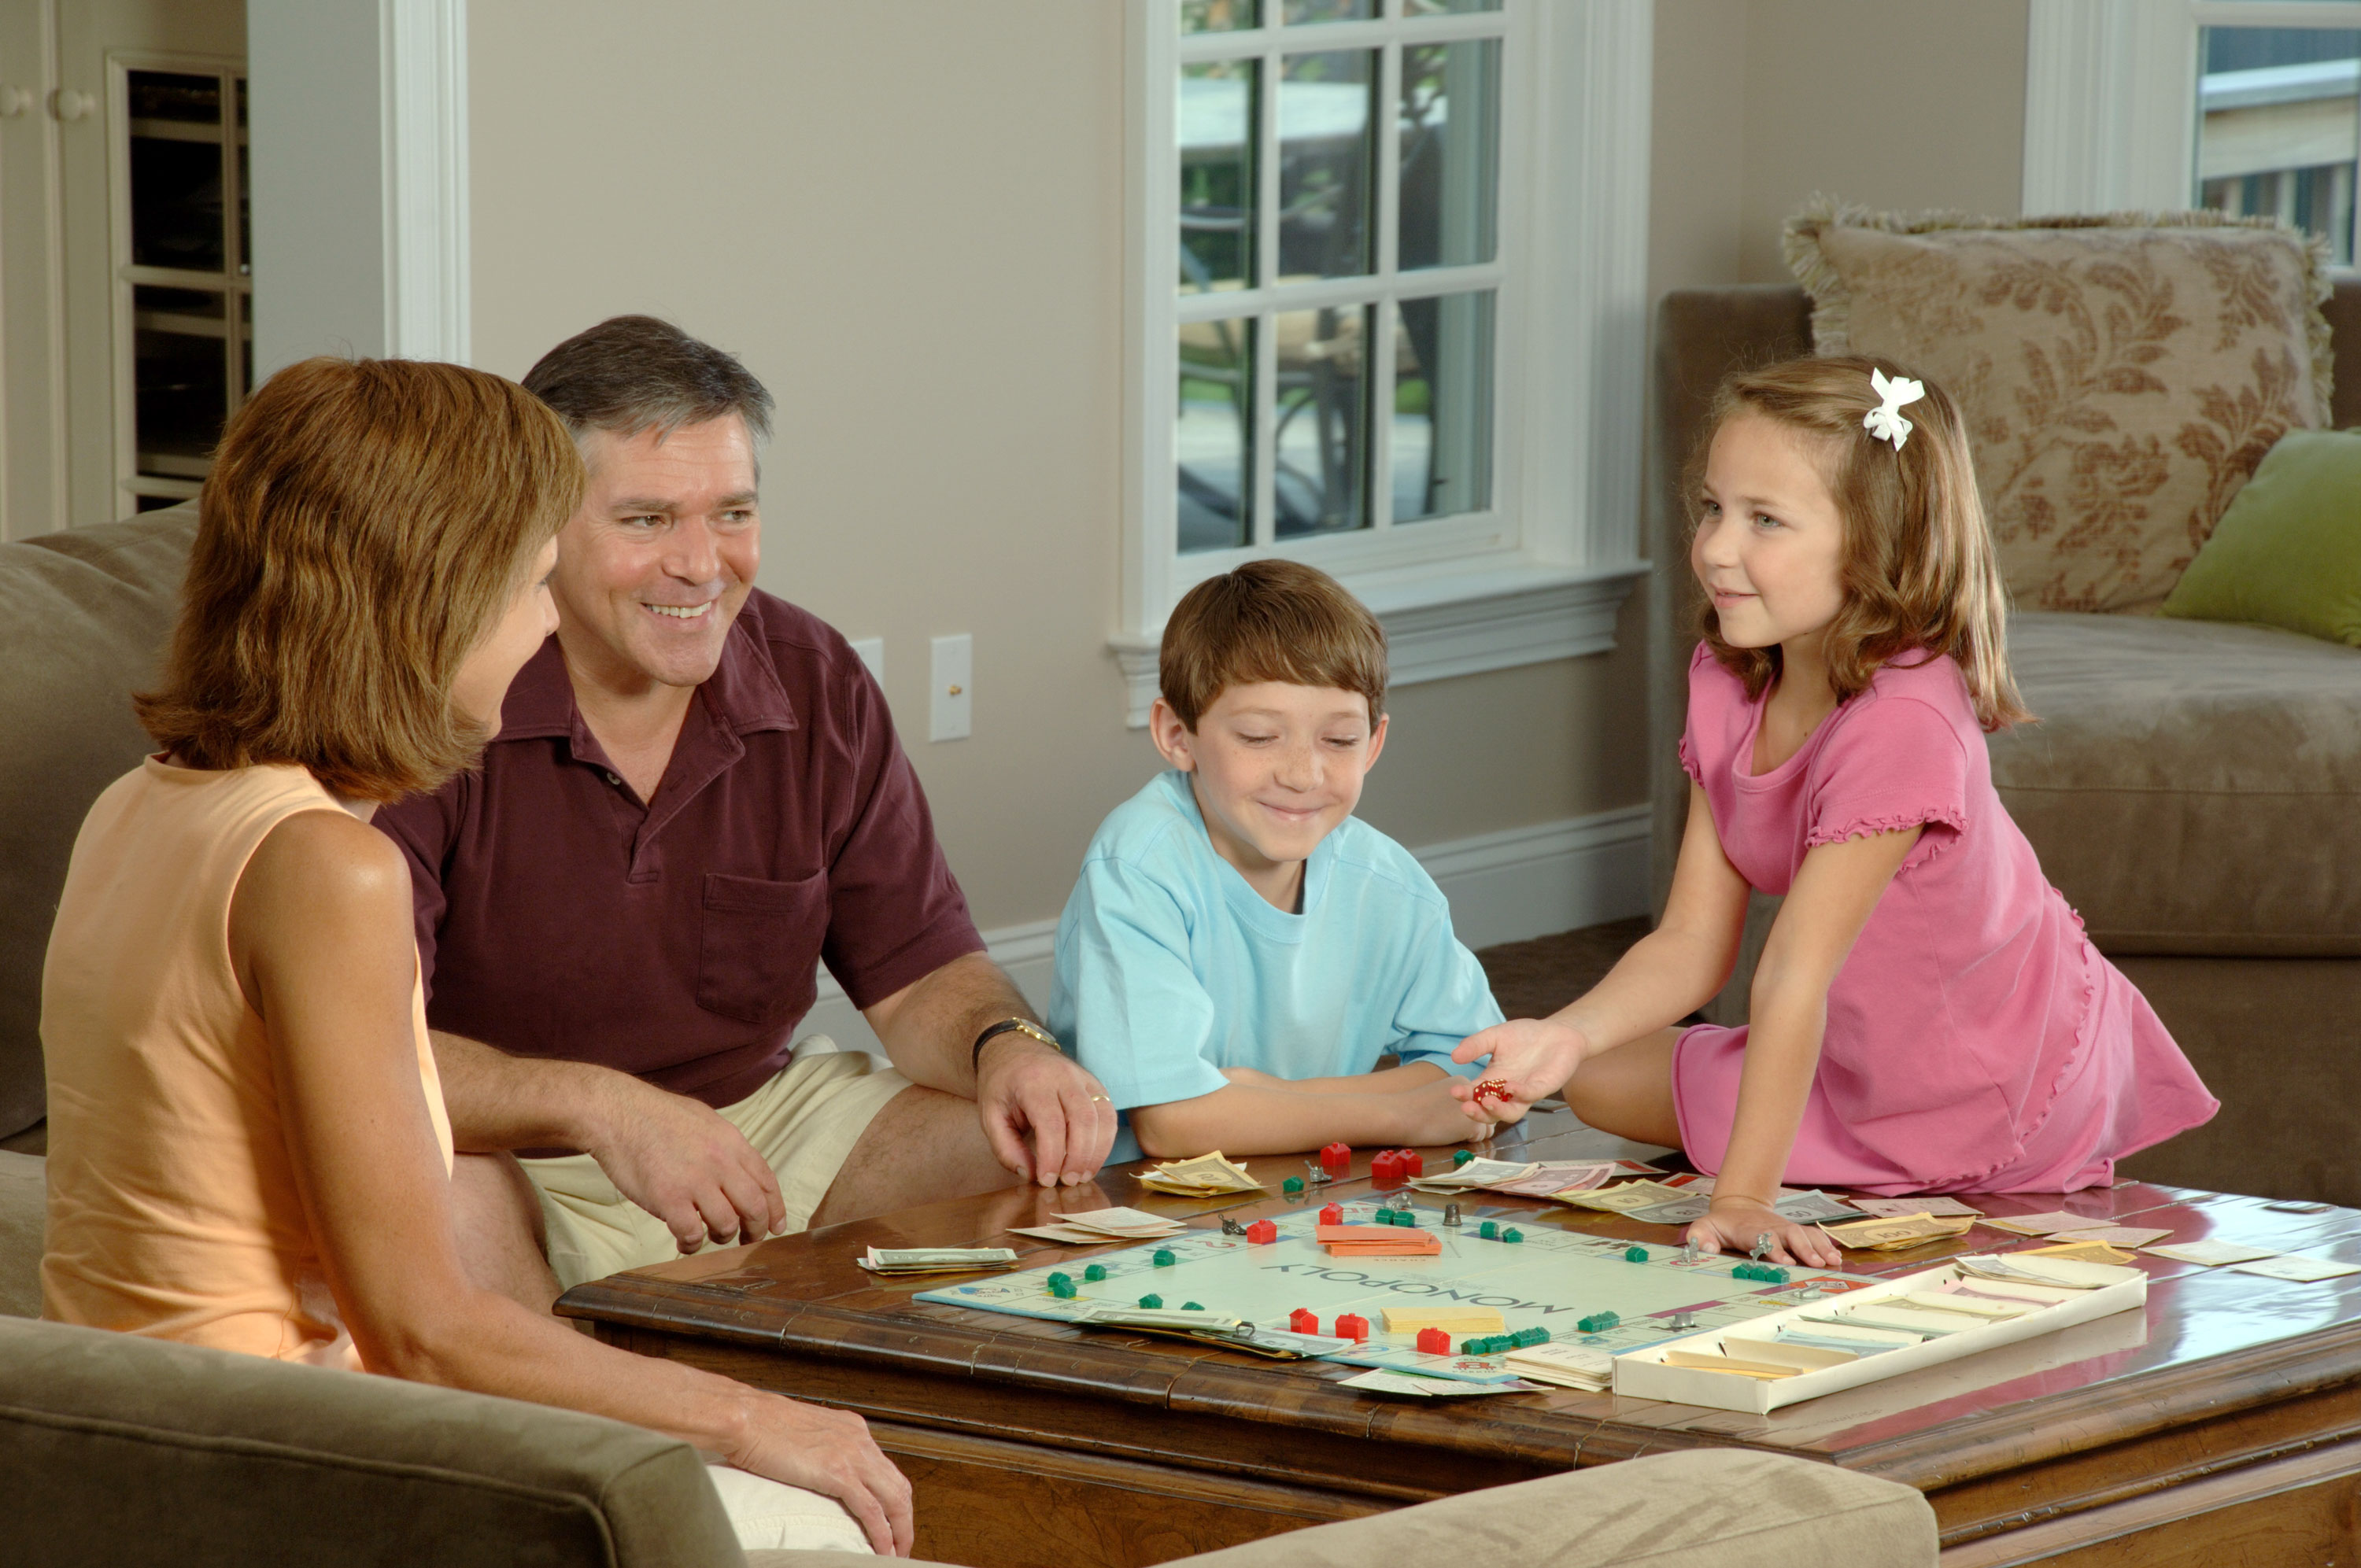 Family of four playing monopoly in the living room